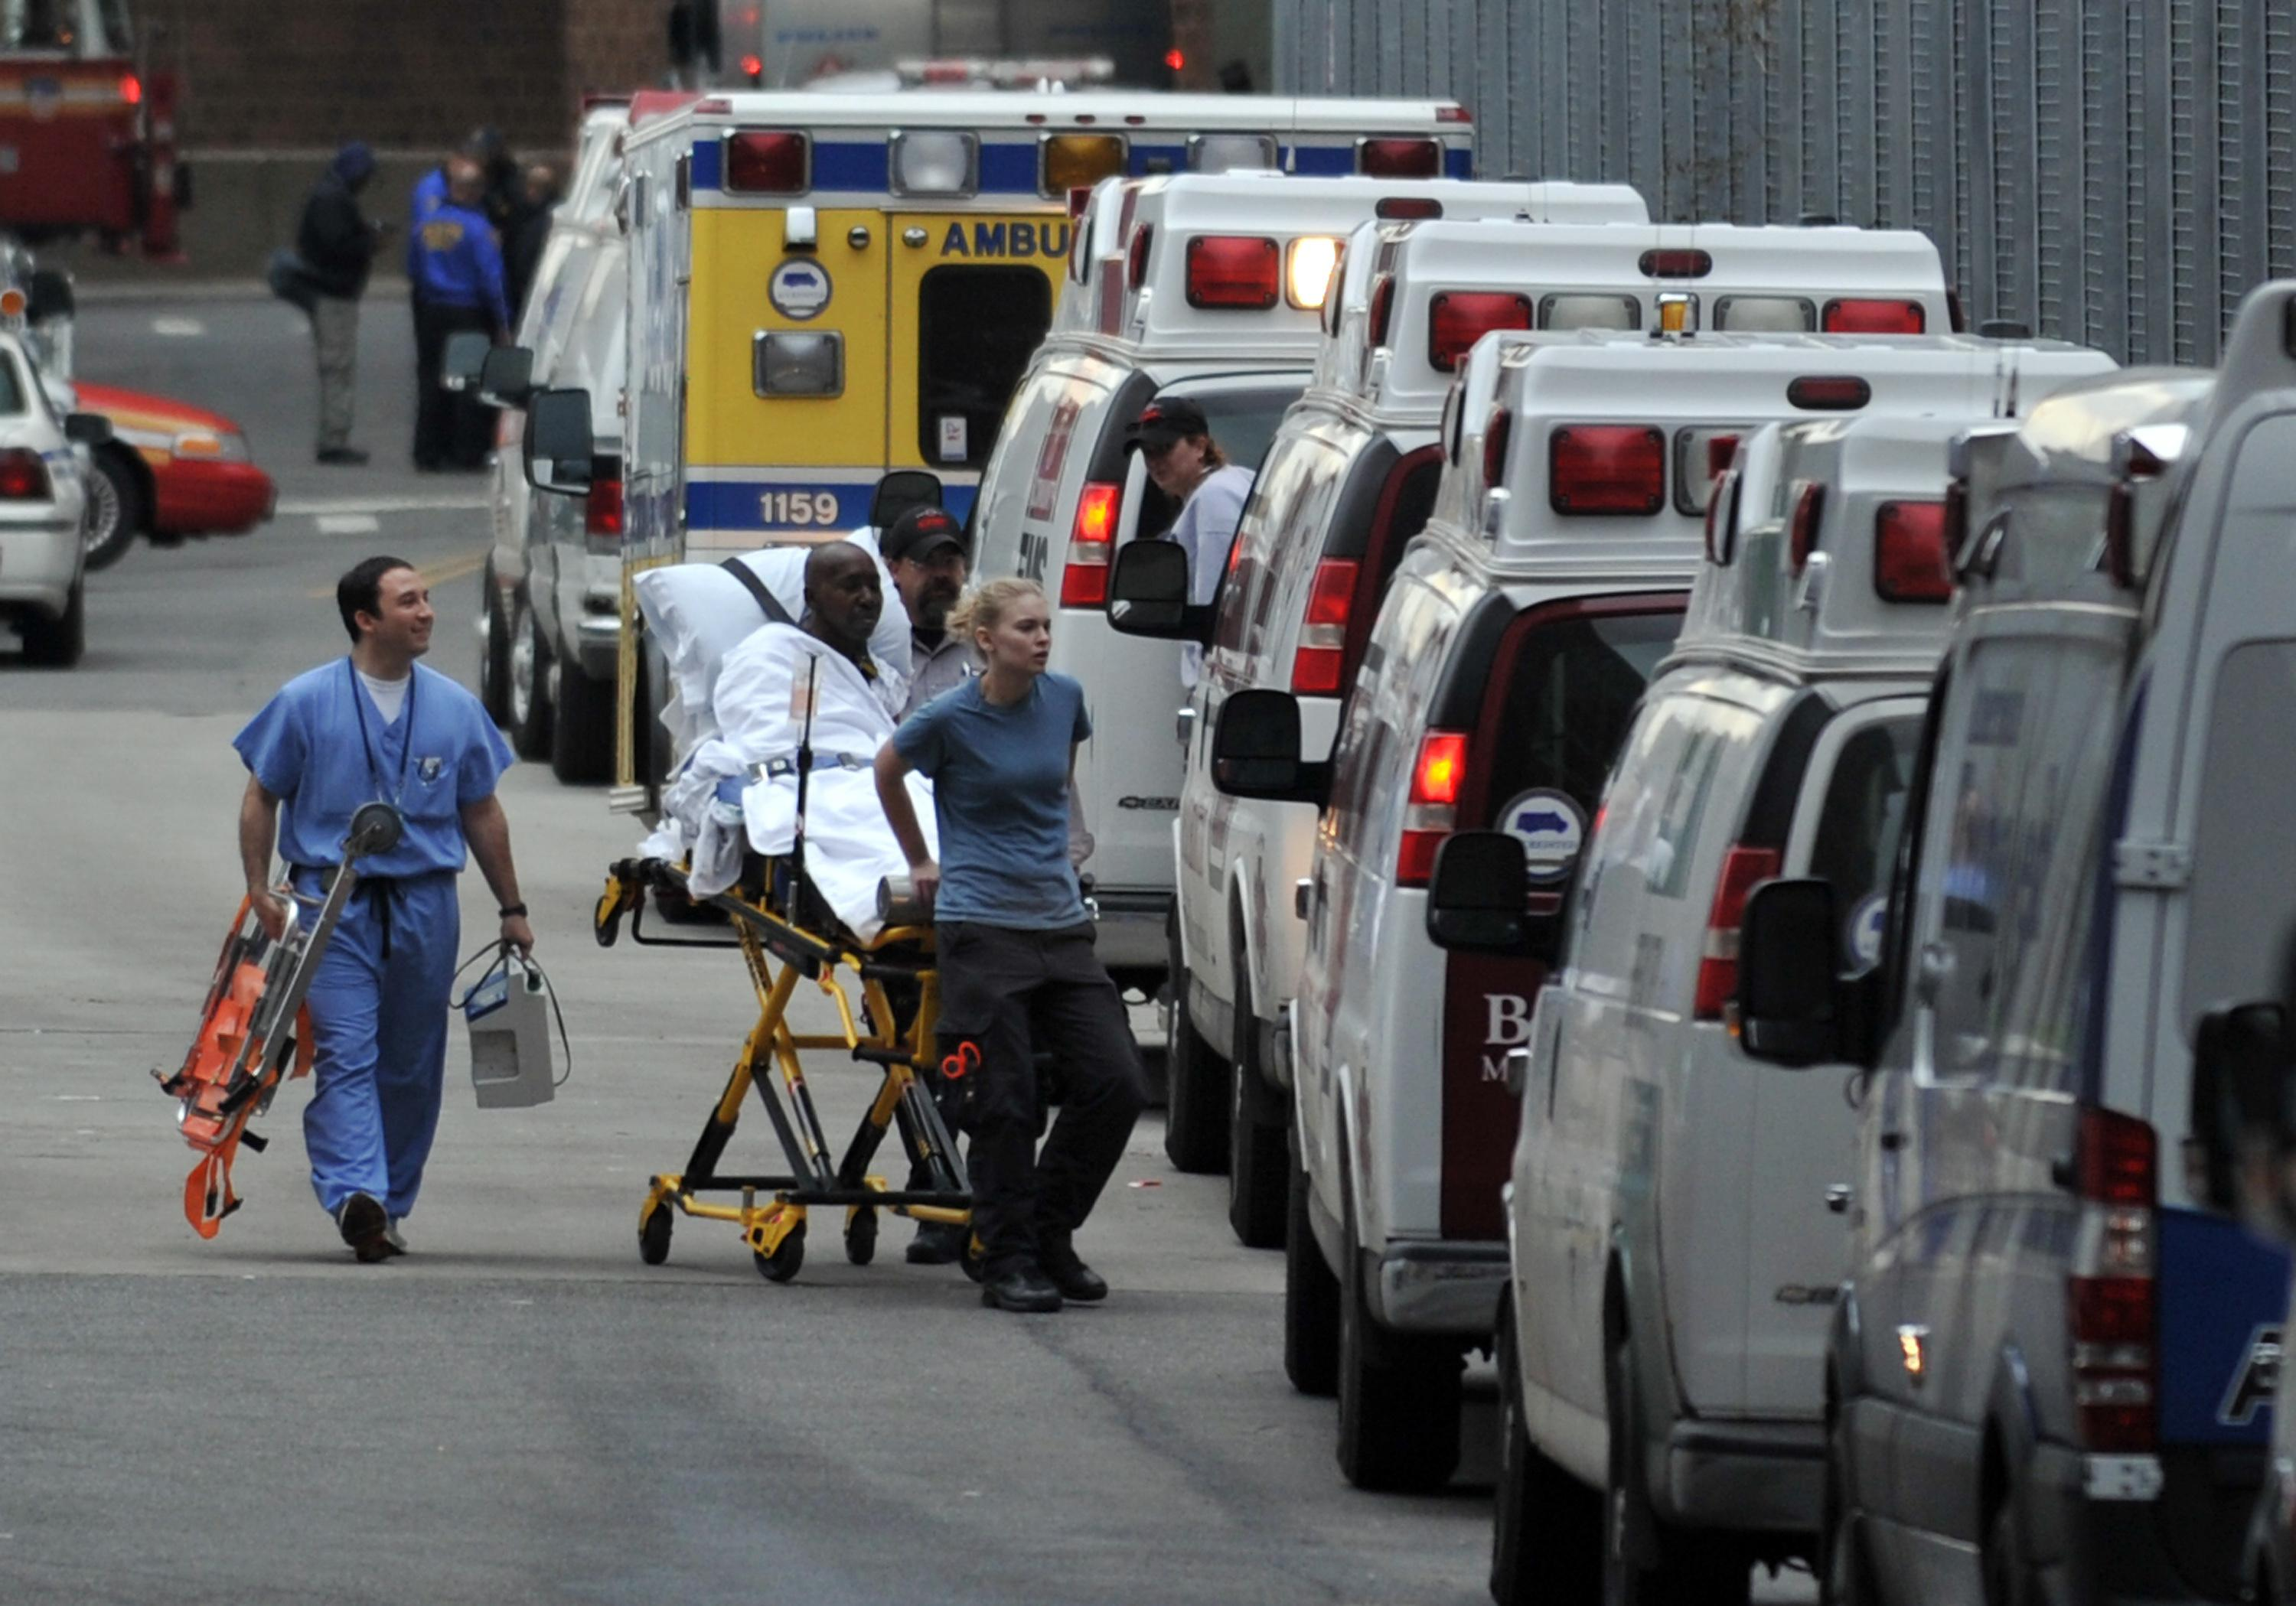 A patient is evacuated from Bellevue Hospital on October 31, 2012 in New York.